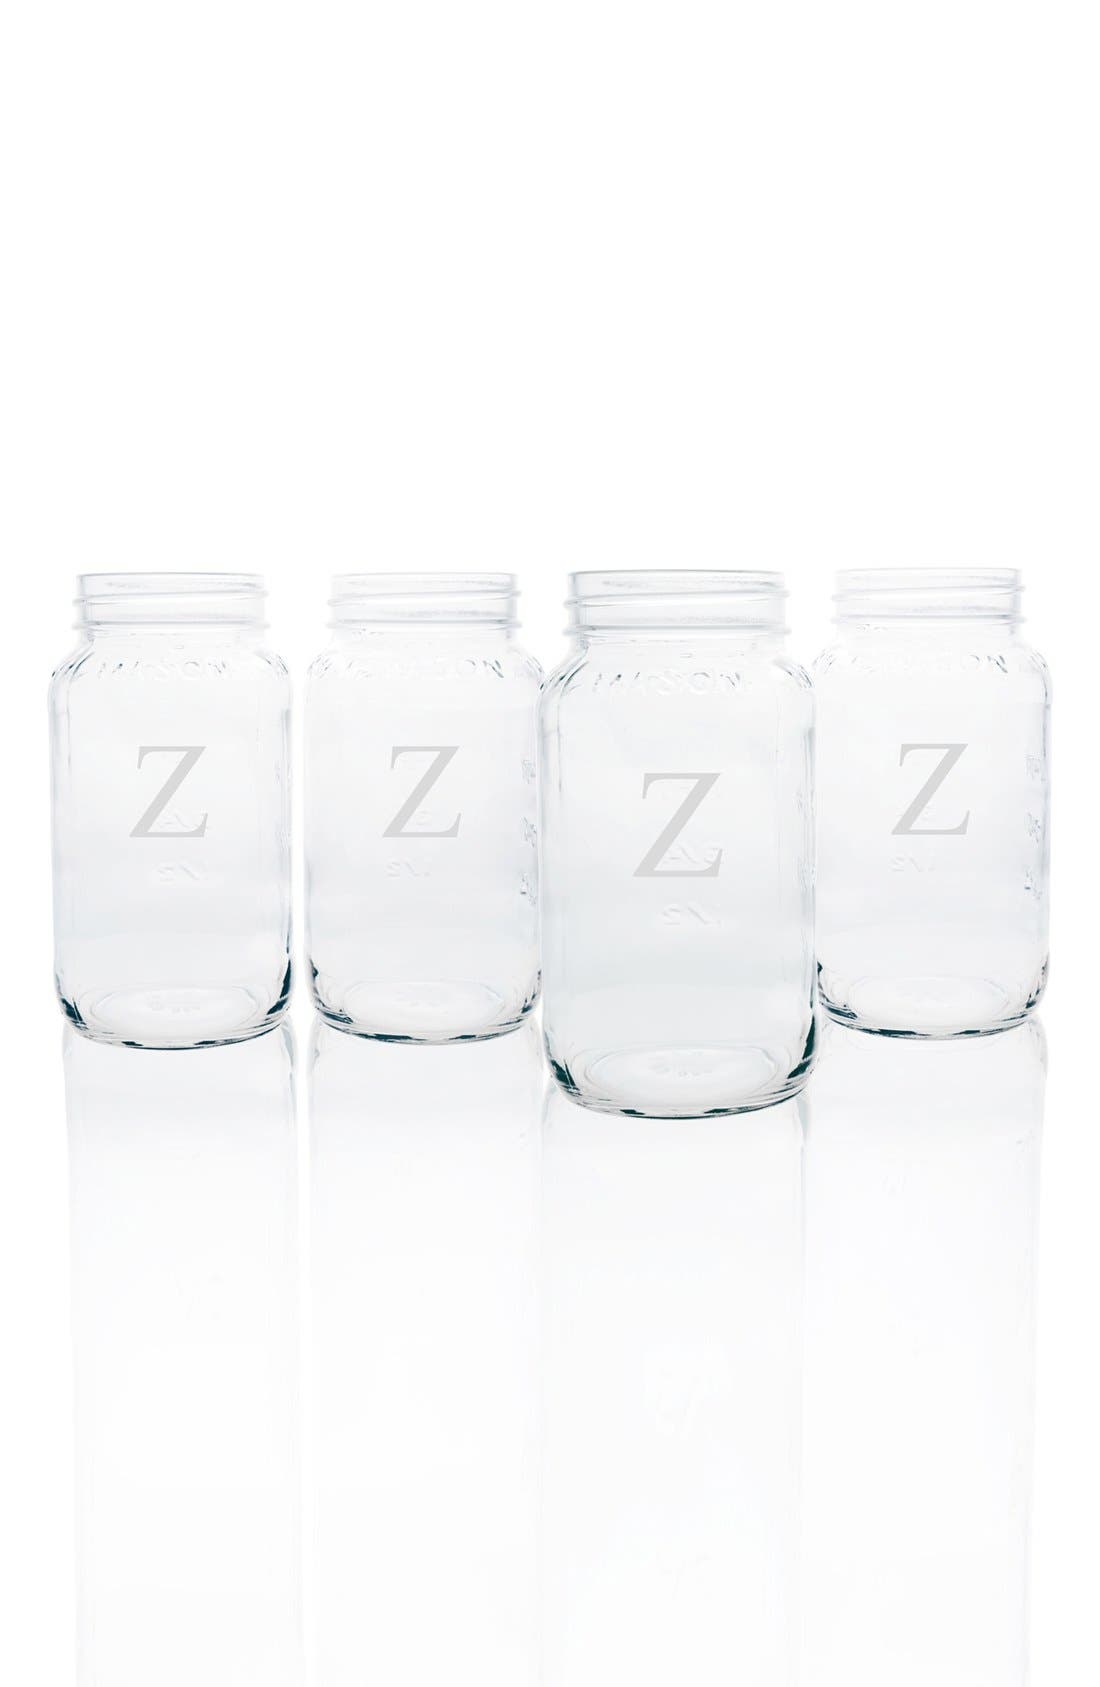 Cathy's Concepts Monogram Glass Mason Jar Mugs (Set of 4)